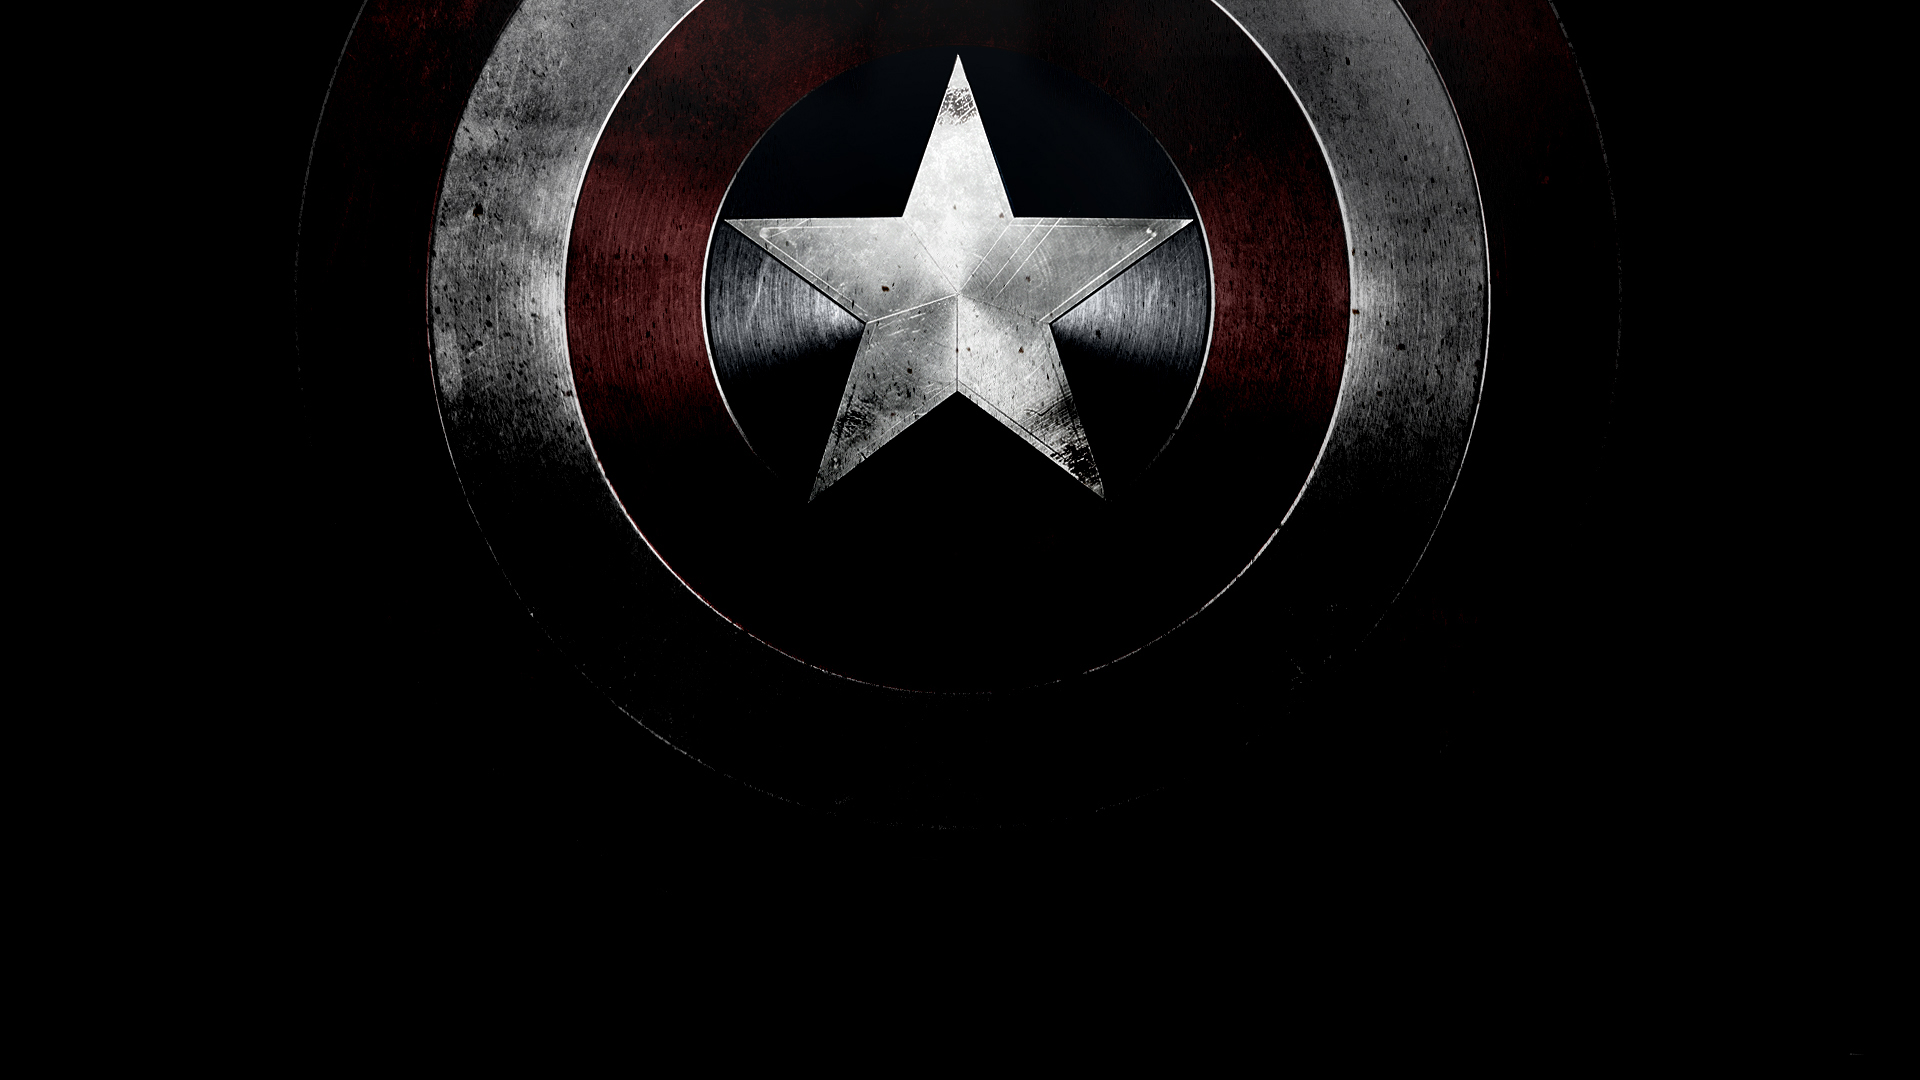 Captain America Wallpaper 1920x1080 Captain America Shield Marvel 1920x1080